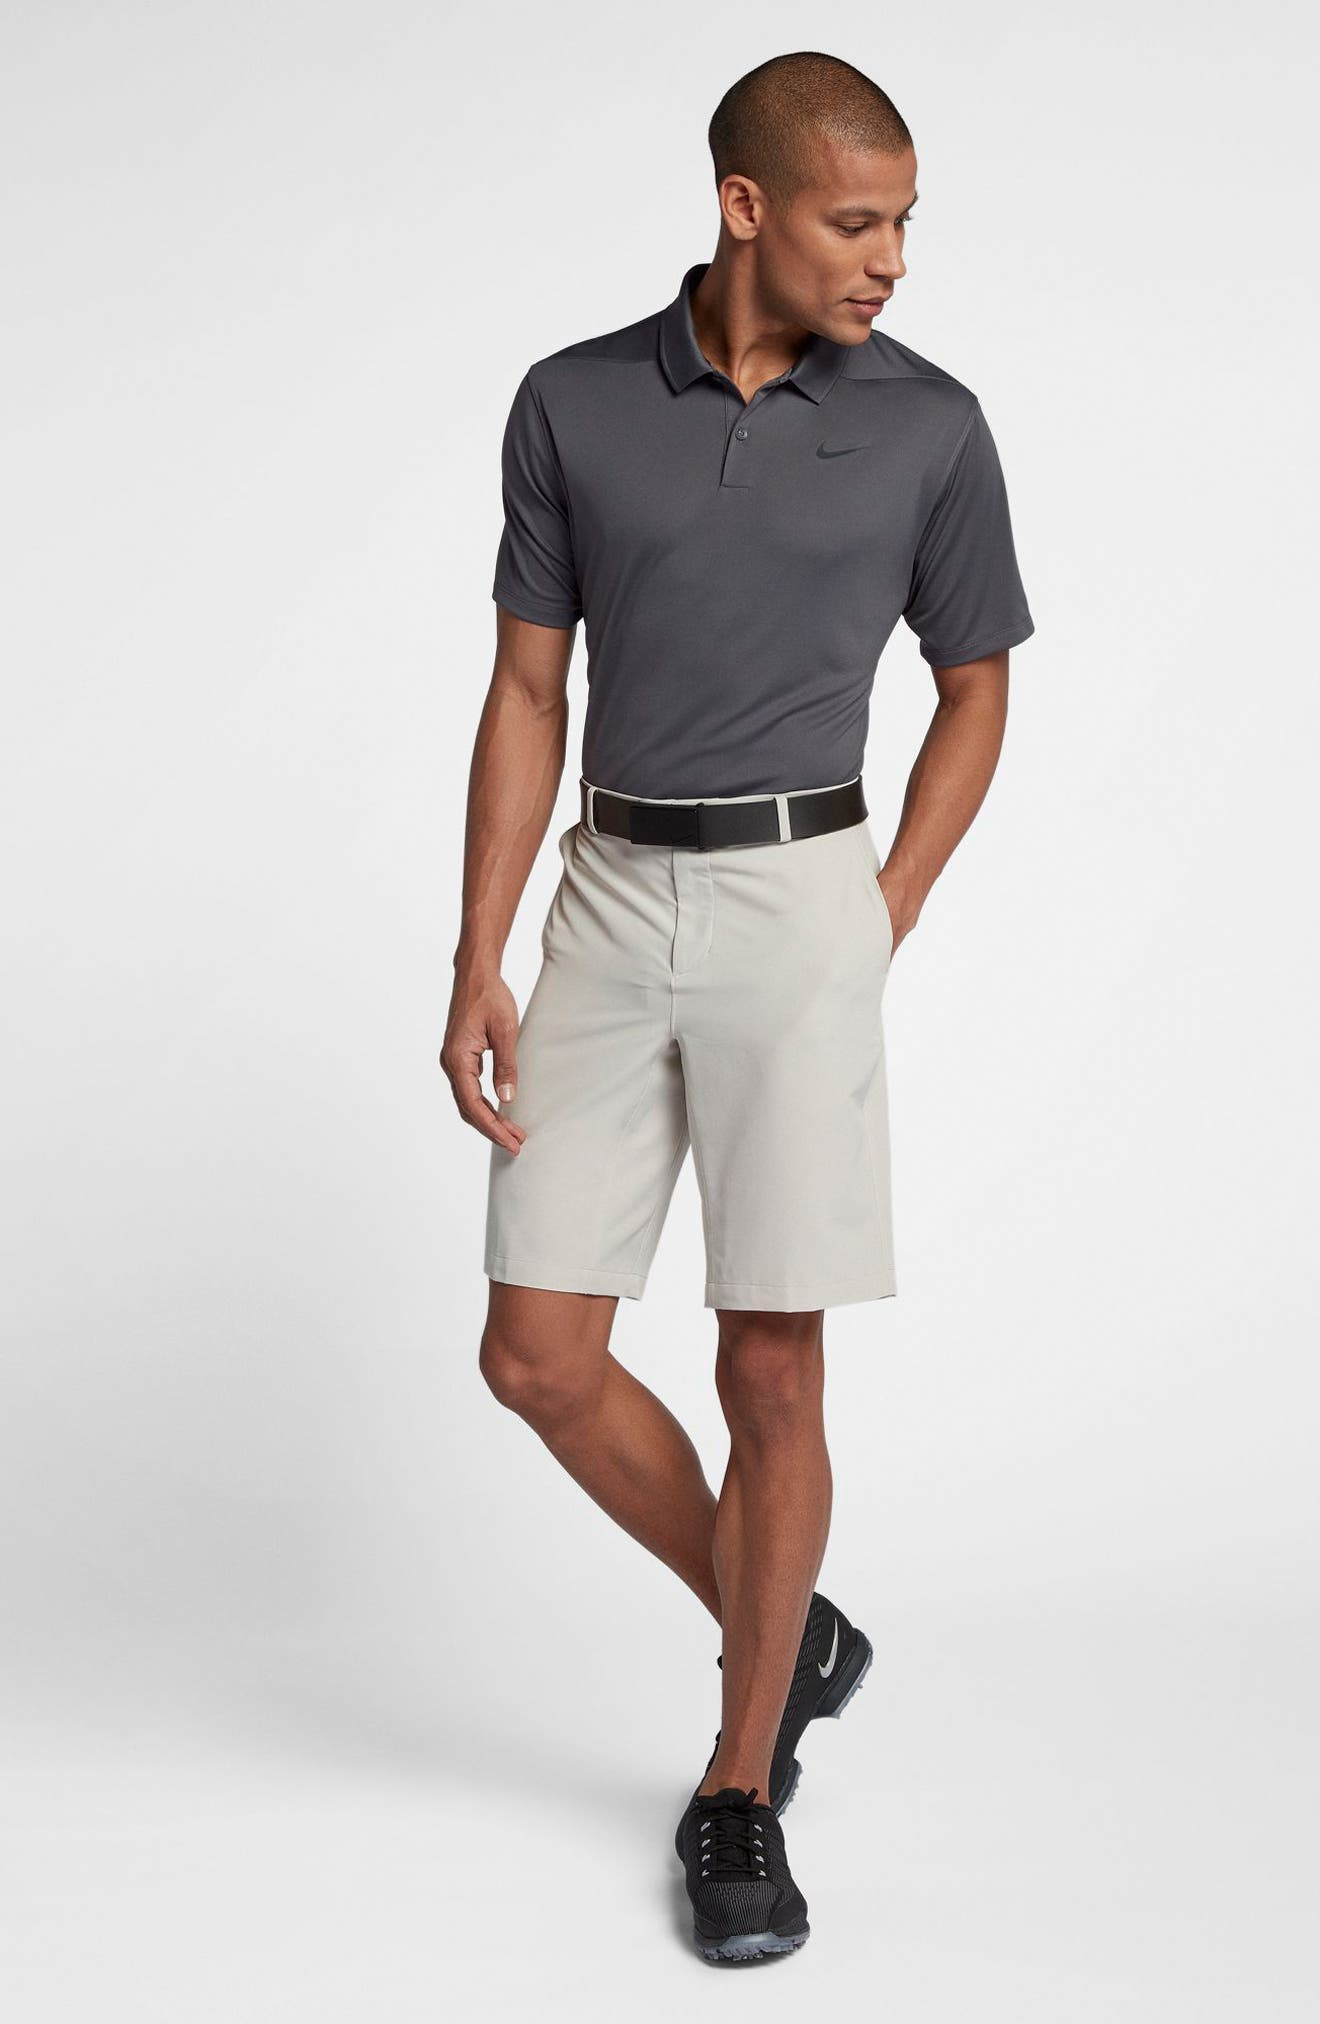 Dry Victory Golf Polo,                             Alternate thumbnail 4, color,                             DARK GREY/ BLACK